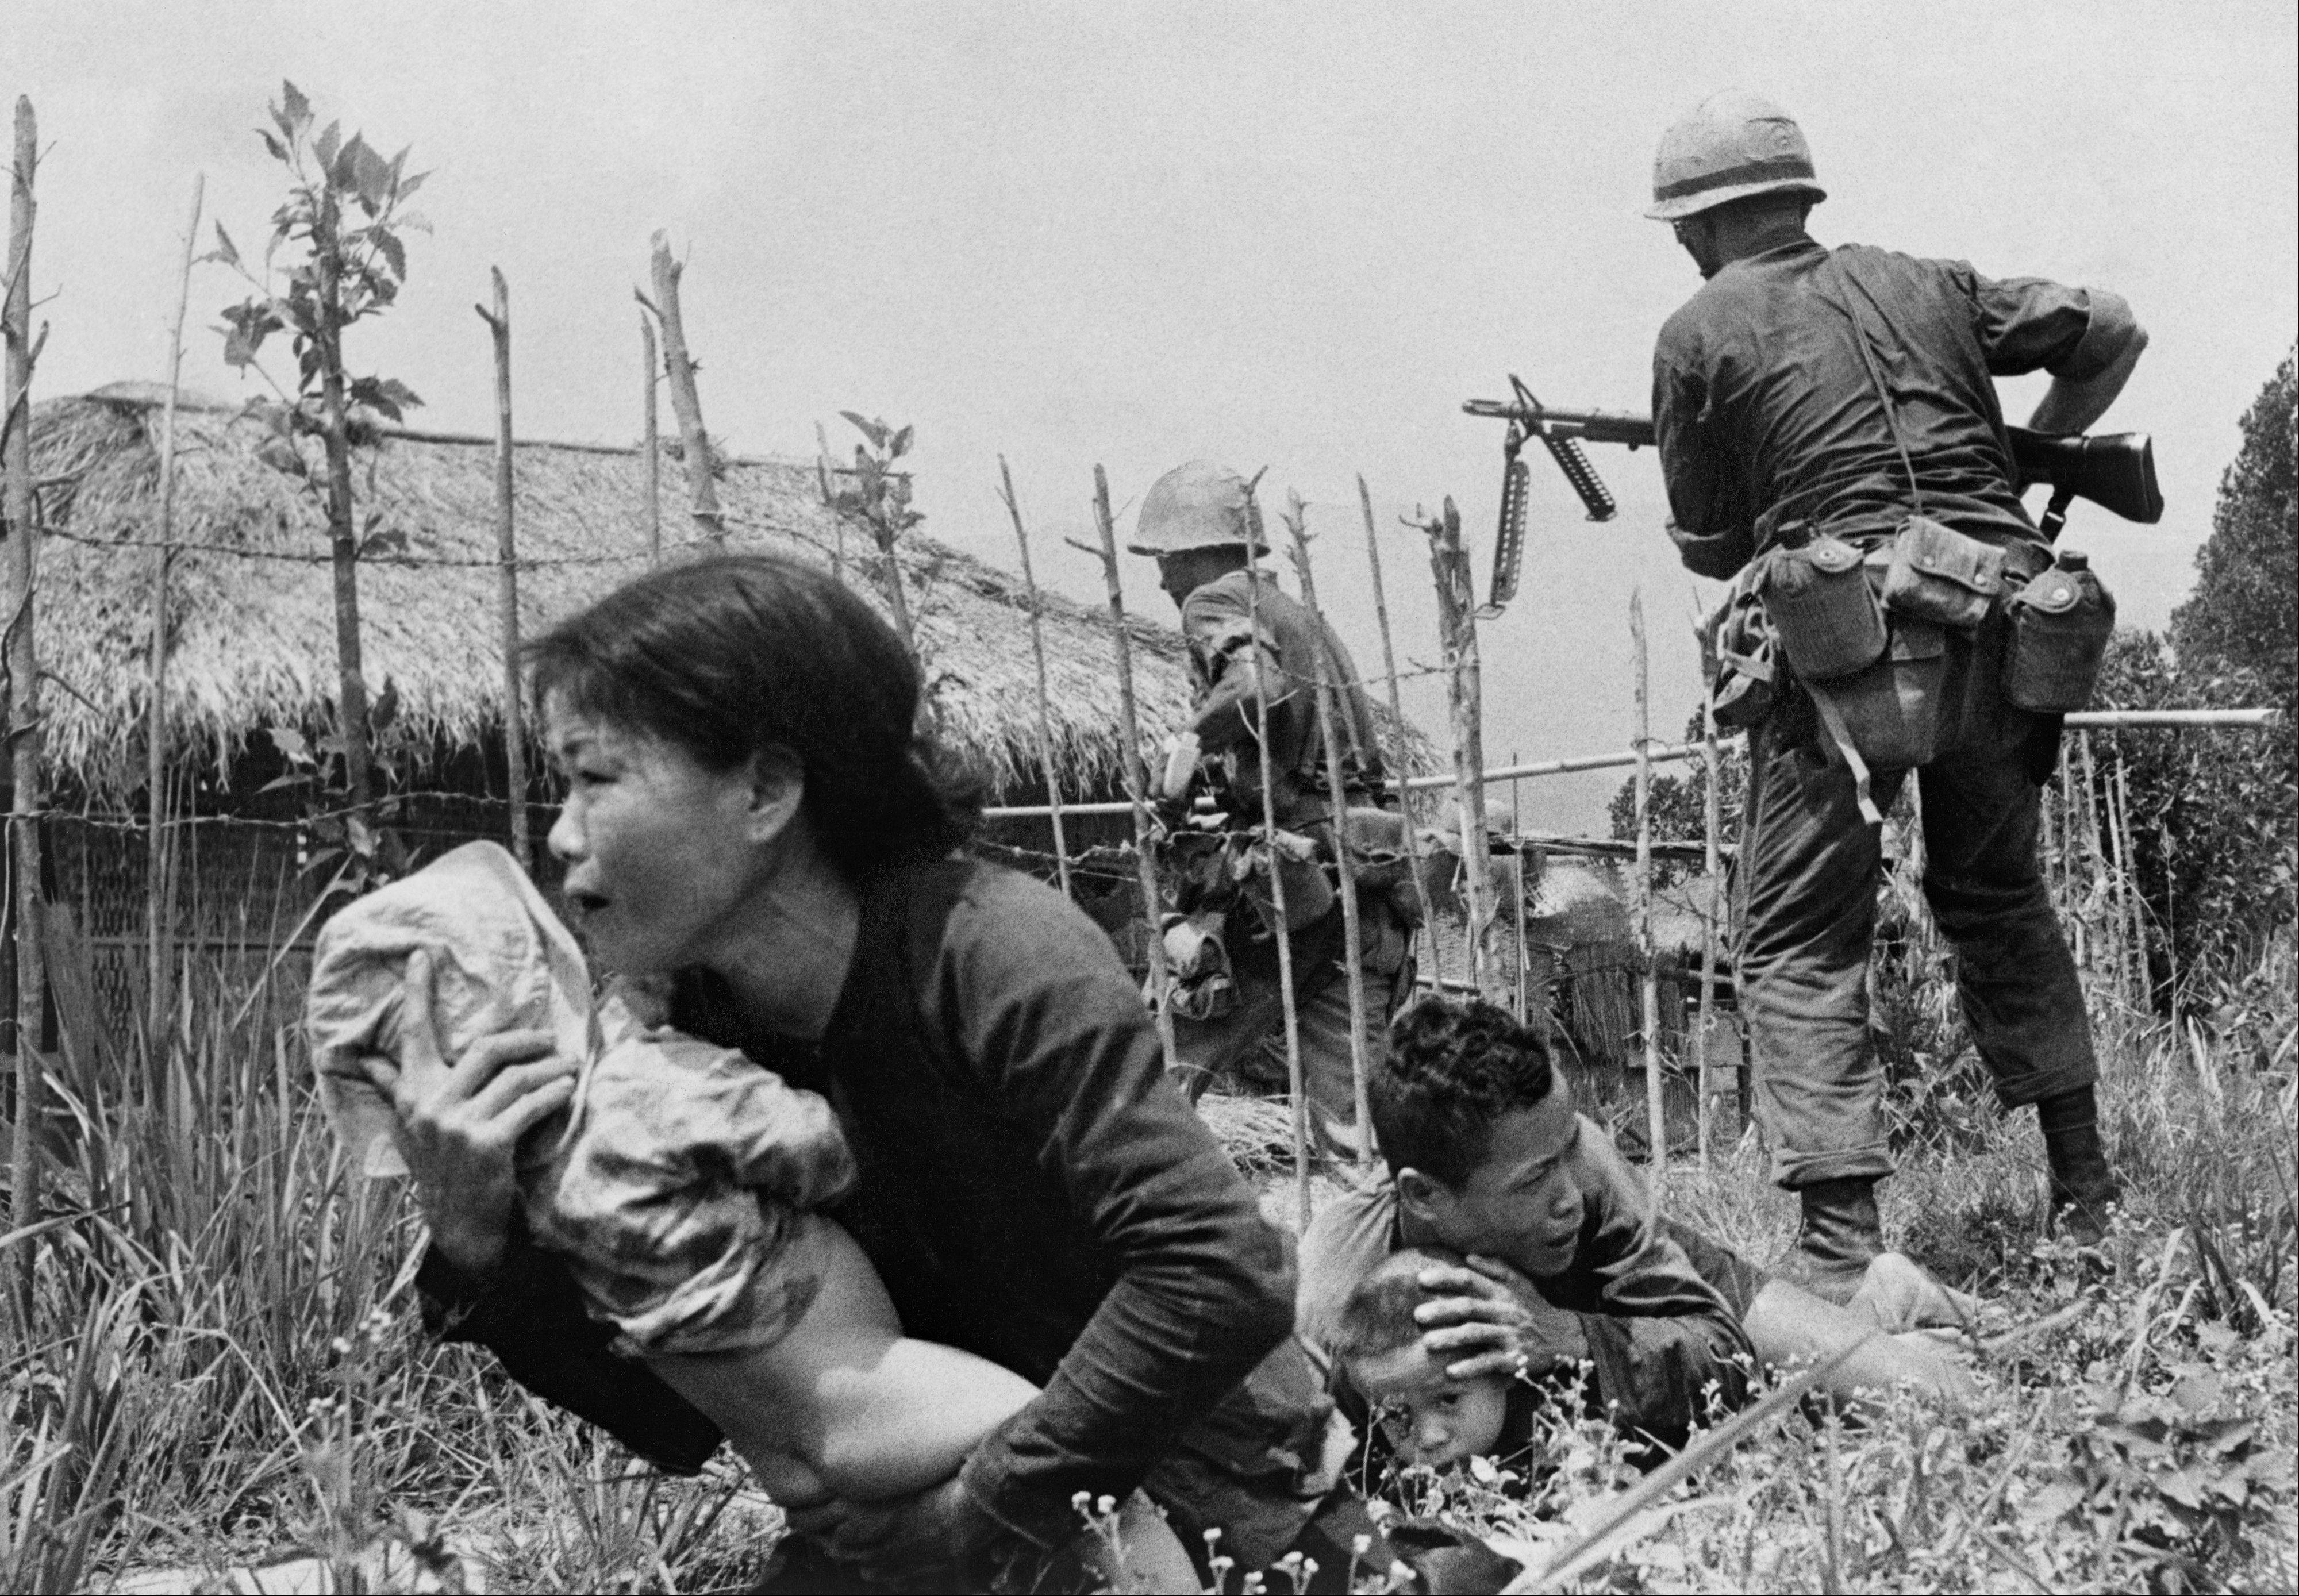 vietnam war and american culture The vietnam war was the second-longest war in united states history, after the war in afghanistan the average age of the american soldier in vietnam was nineteen.